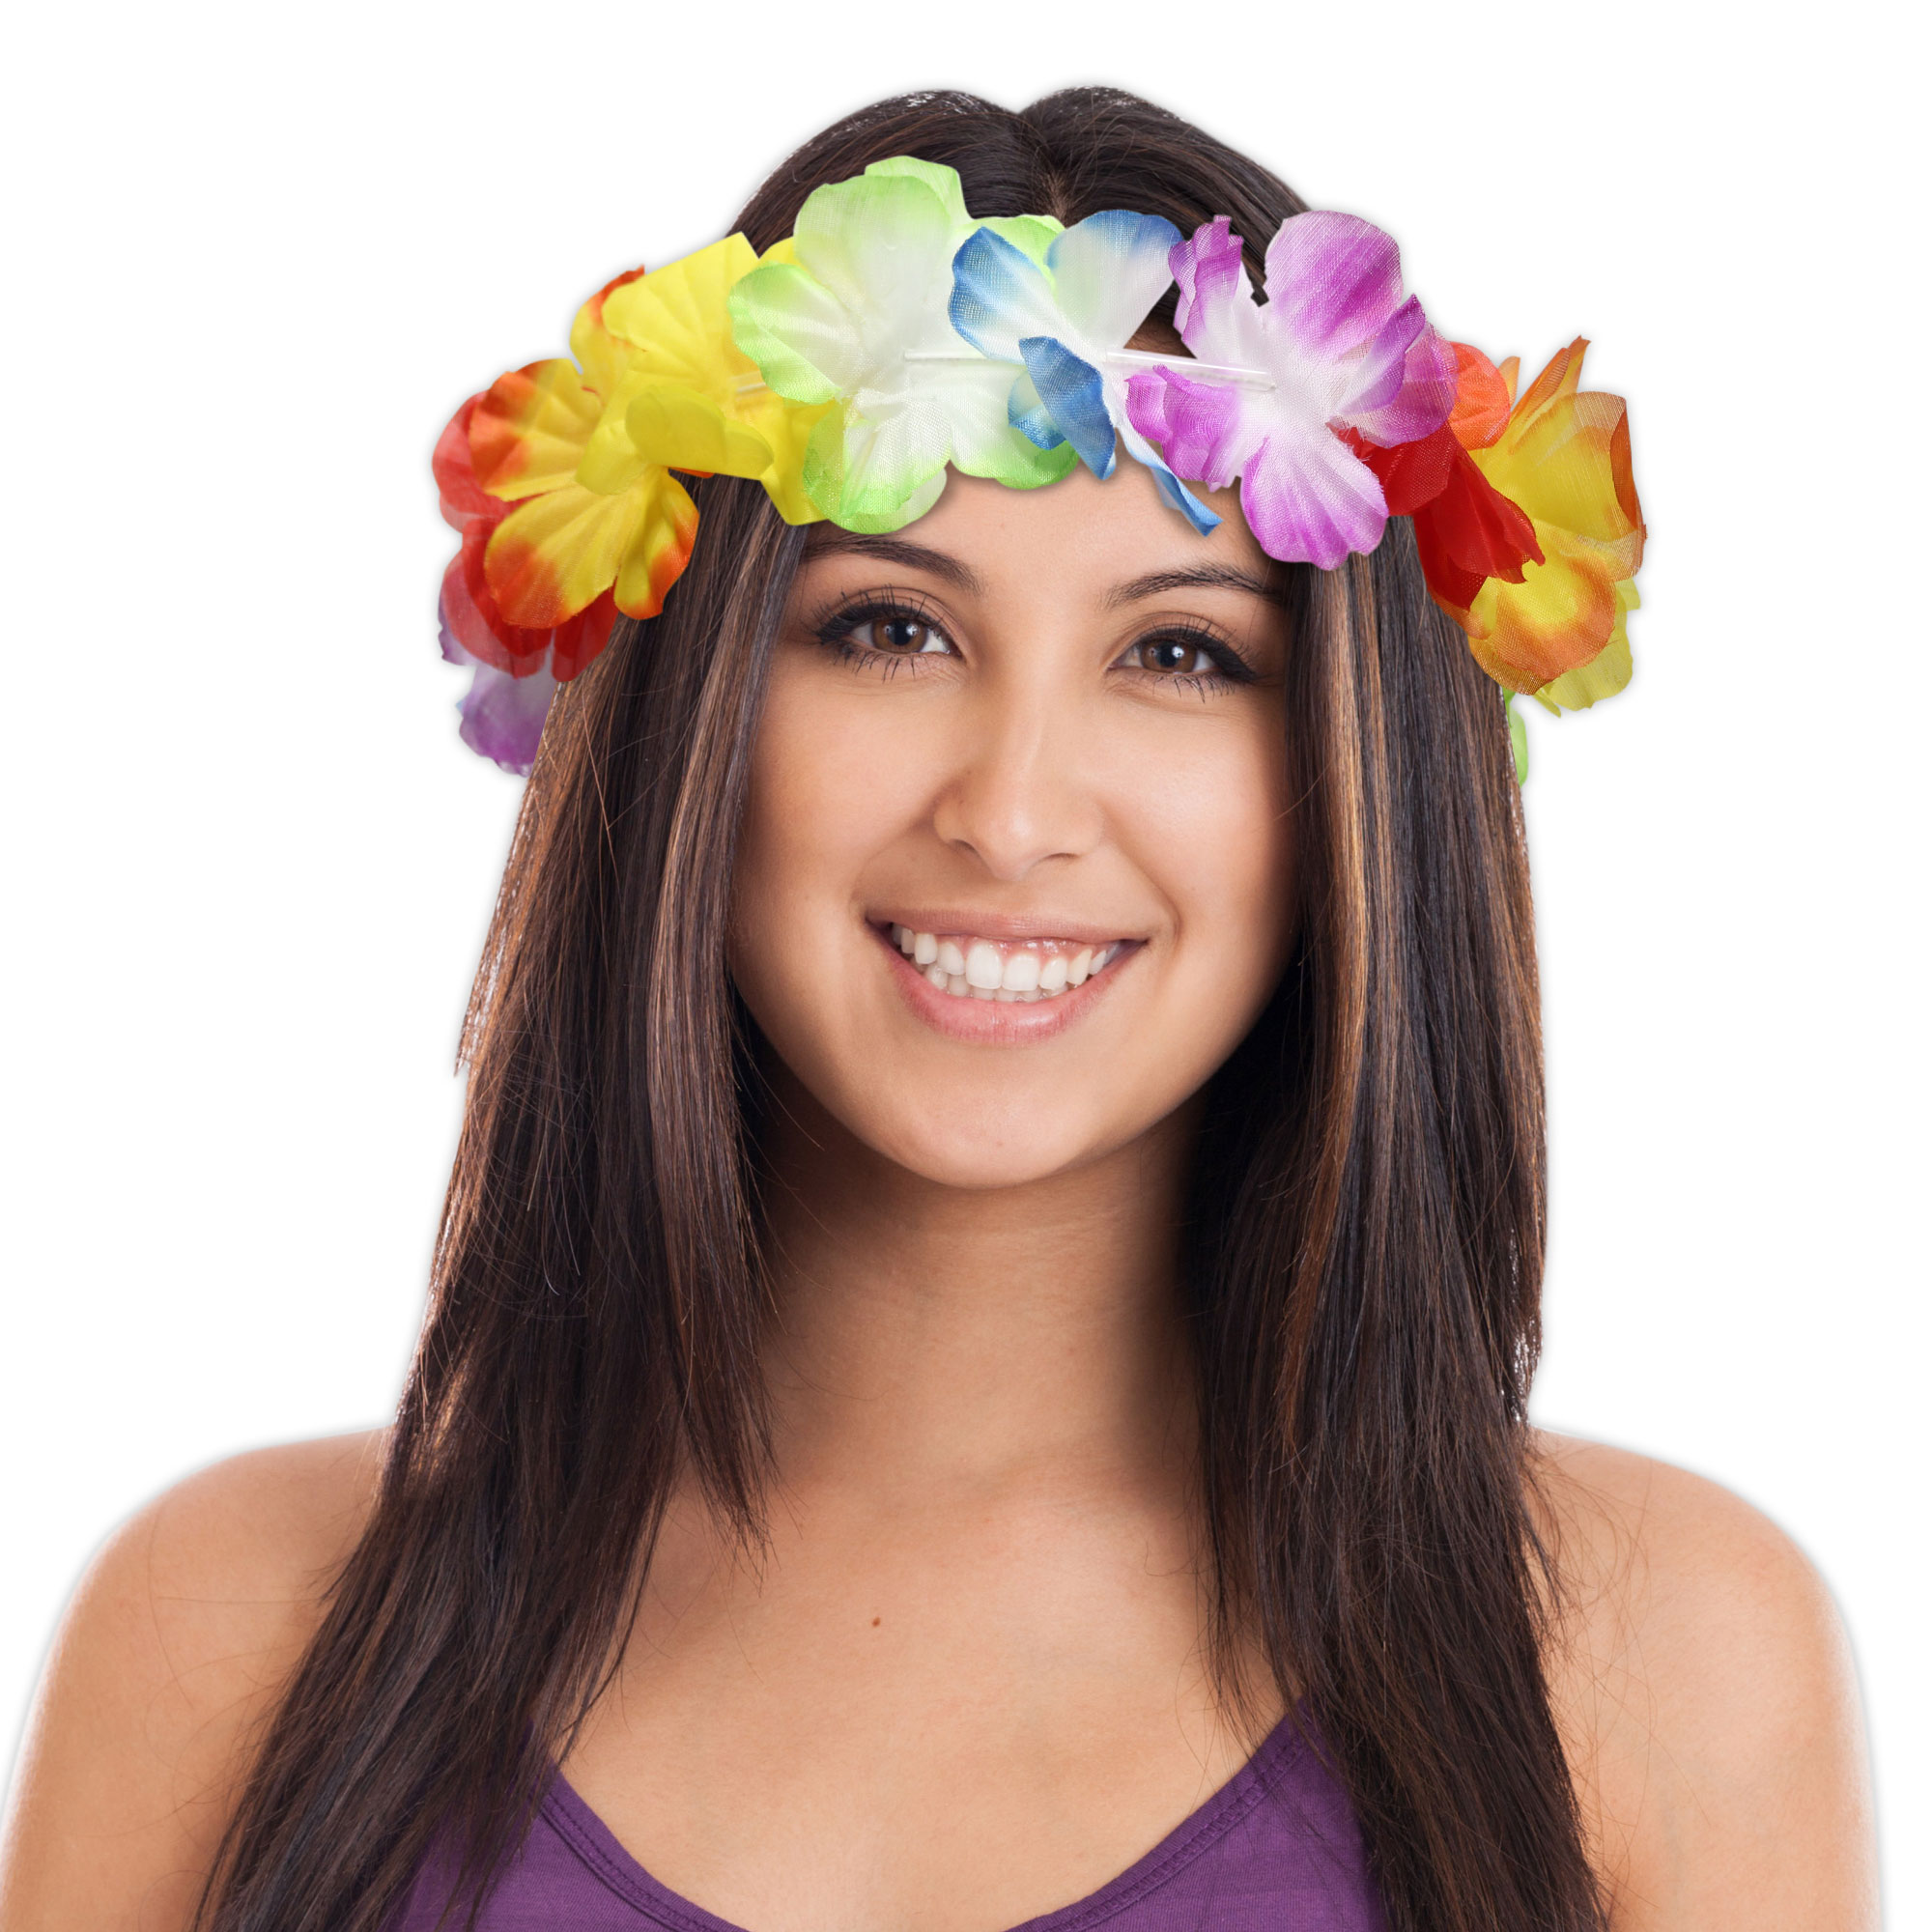 Jumbo Silk Flower Lei Headbands 21 12 Pack